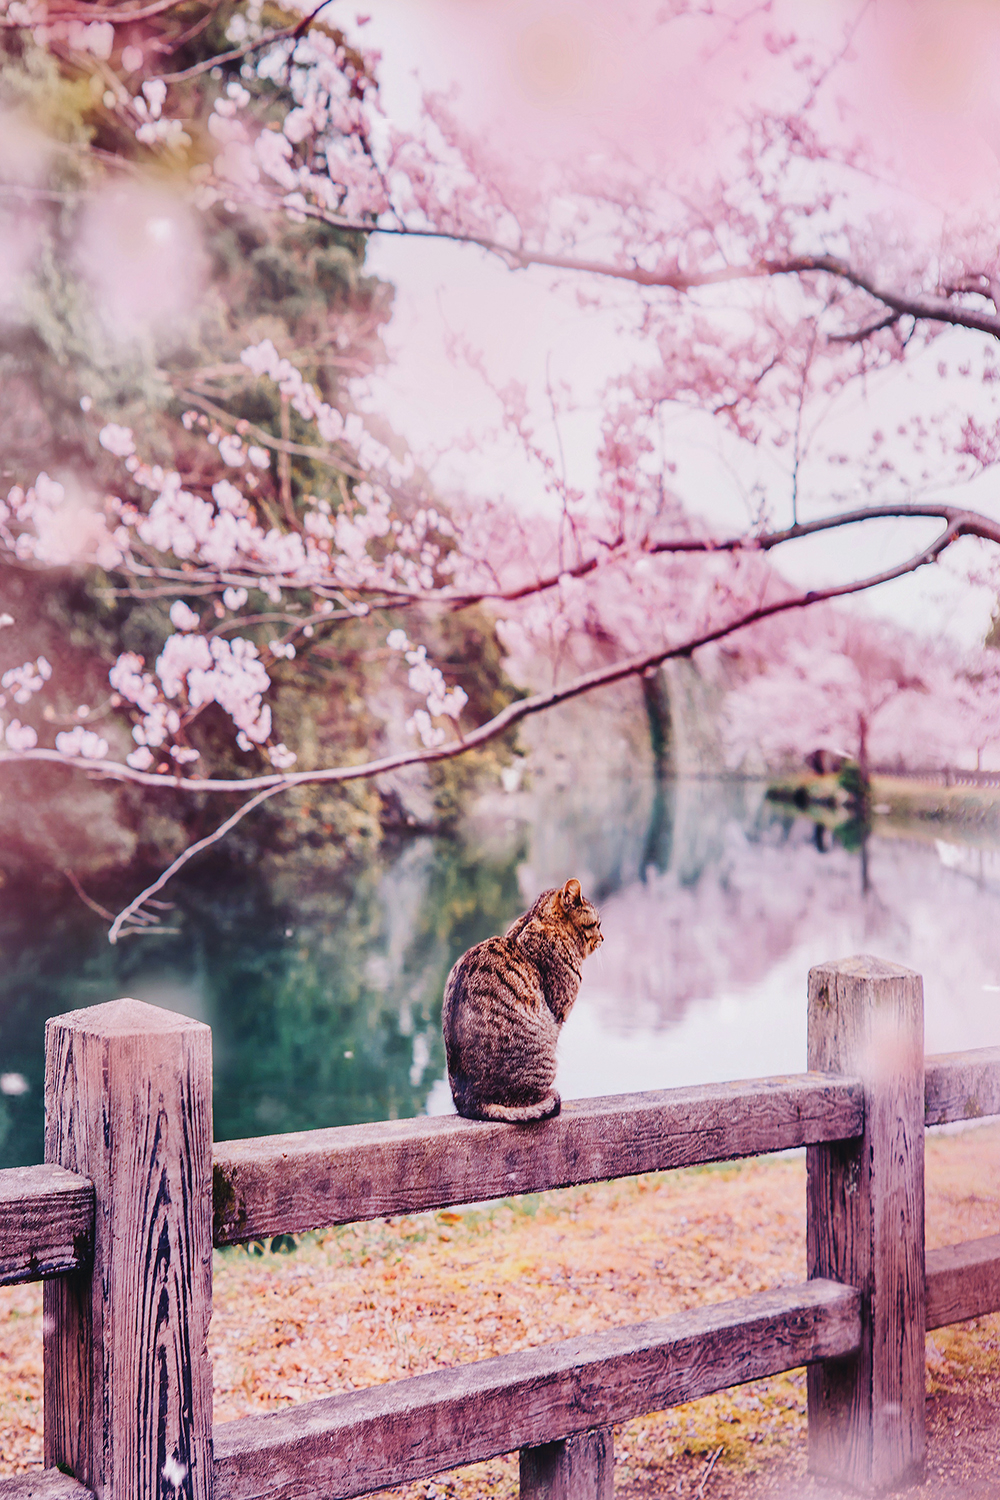 Photo of a striped cat sitting on a fence underneath a pink cherry blossom tree next to a river